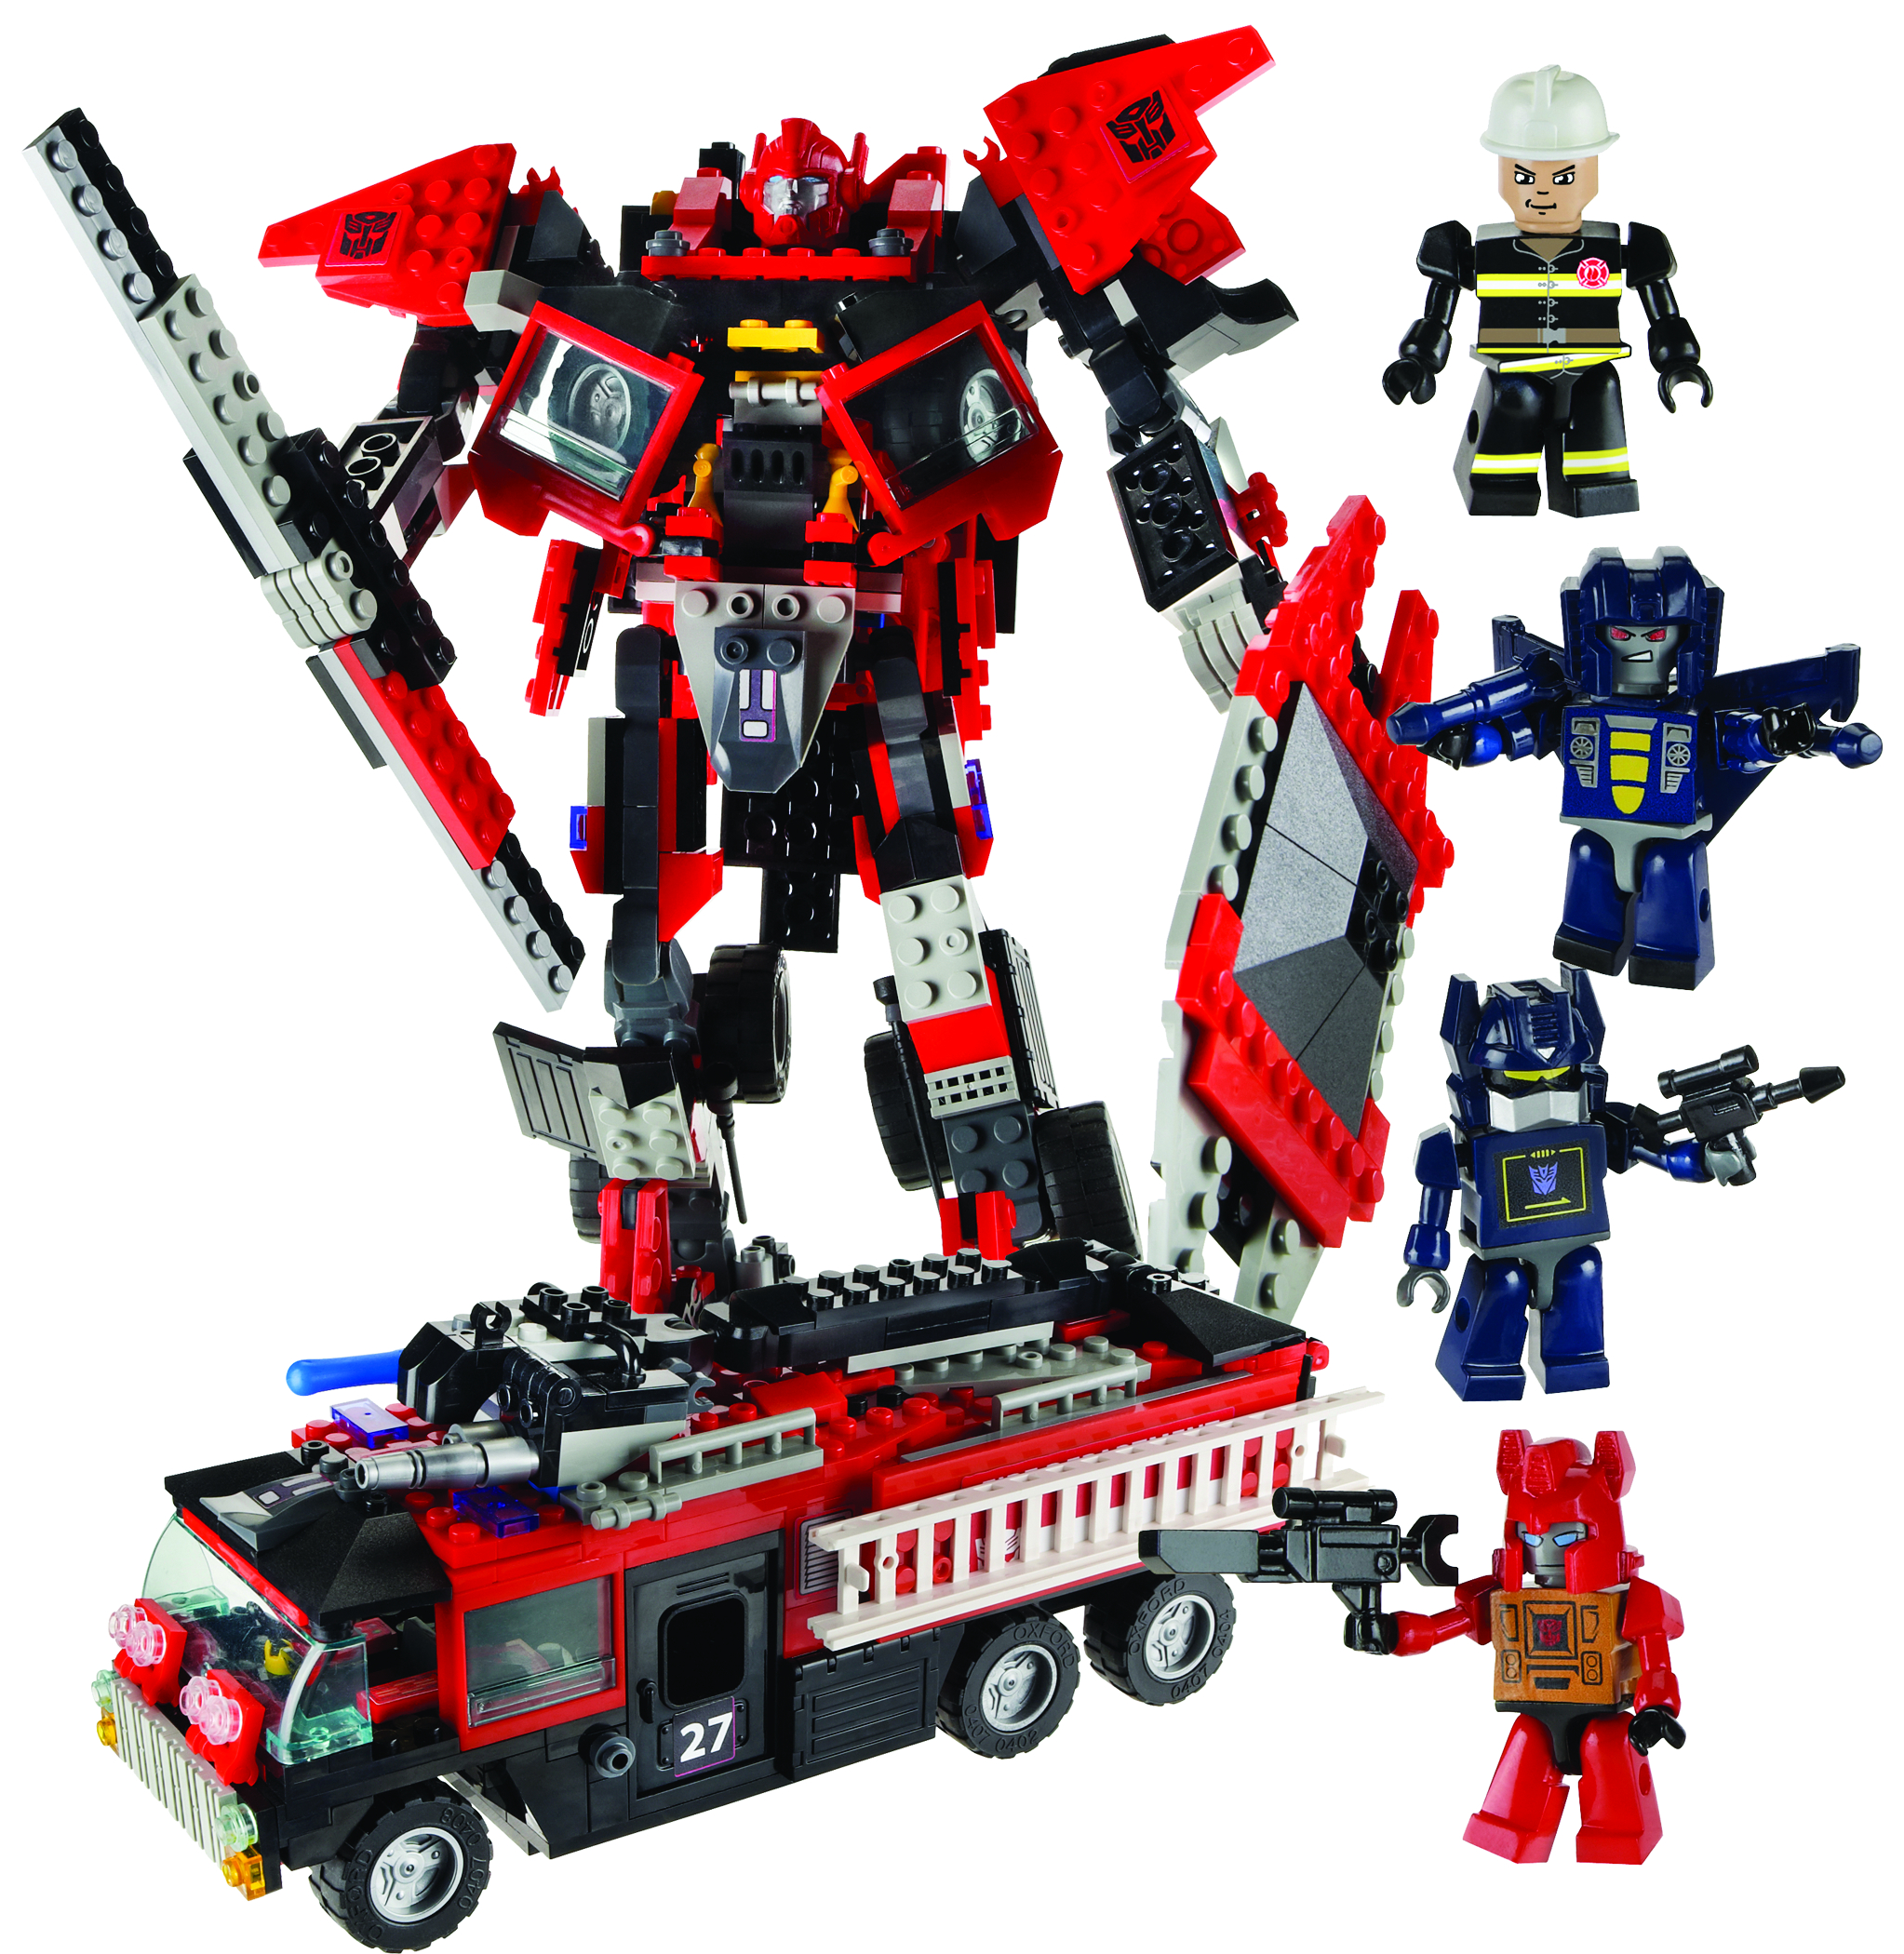 Lego Transformers Toys : Jul kre o transformers fire truck set previews world